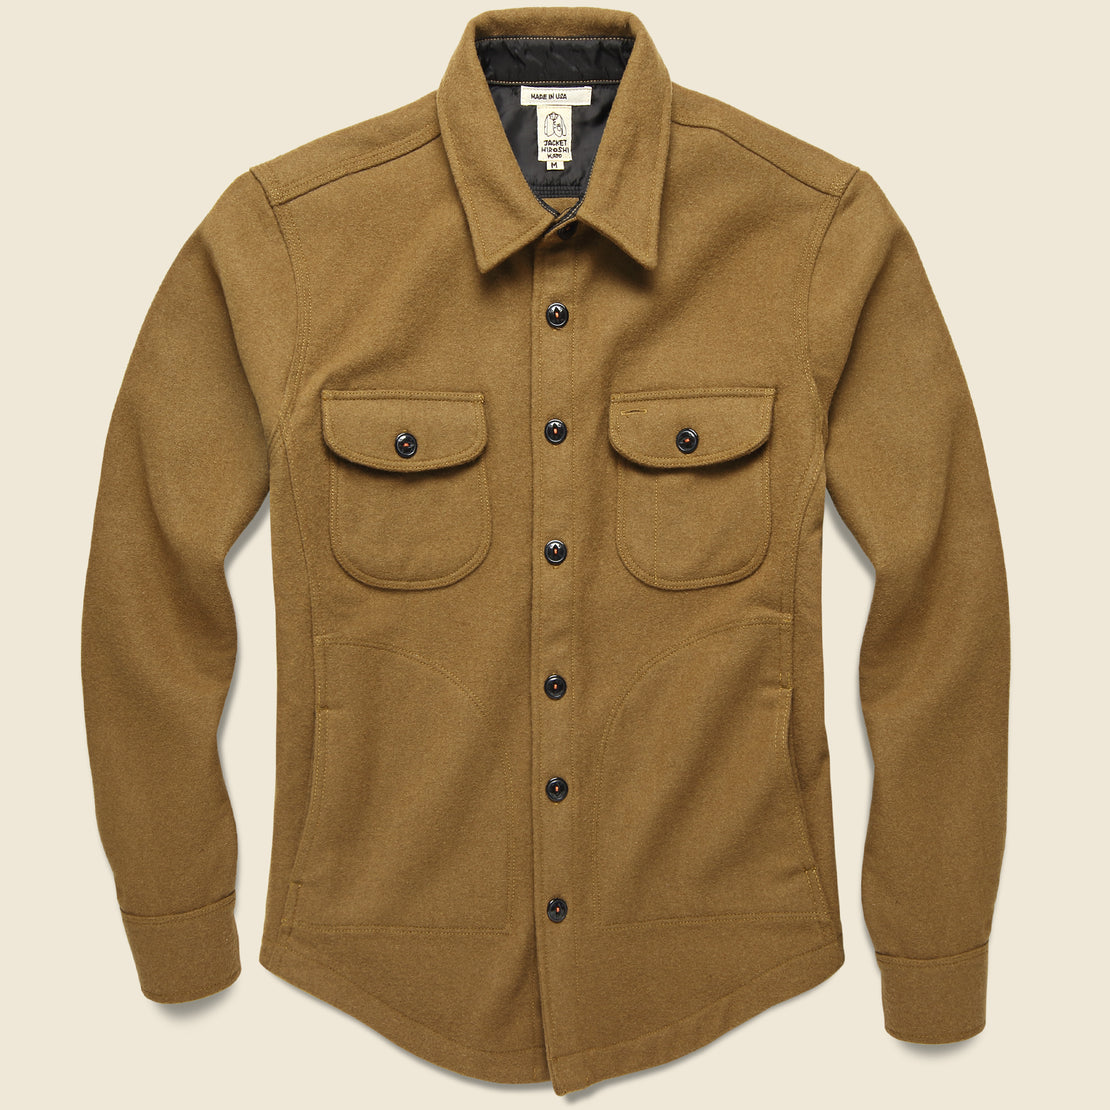 KATO Anvil Shirt Jacket - Camel Melton